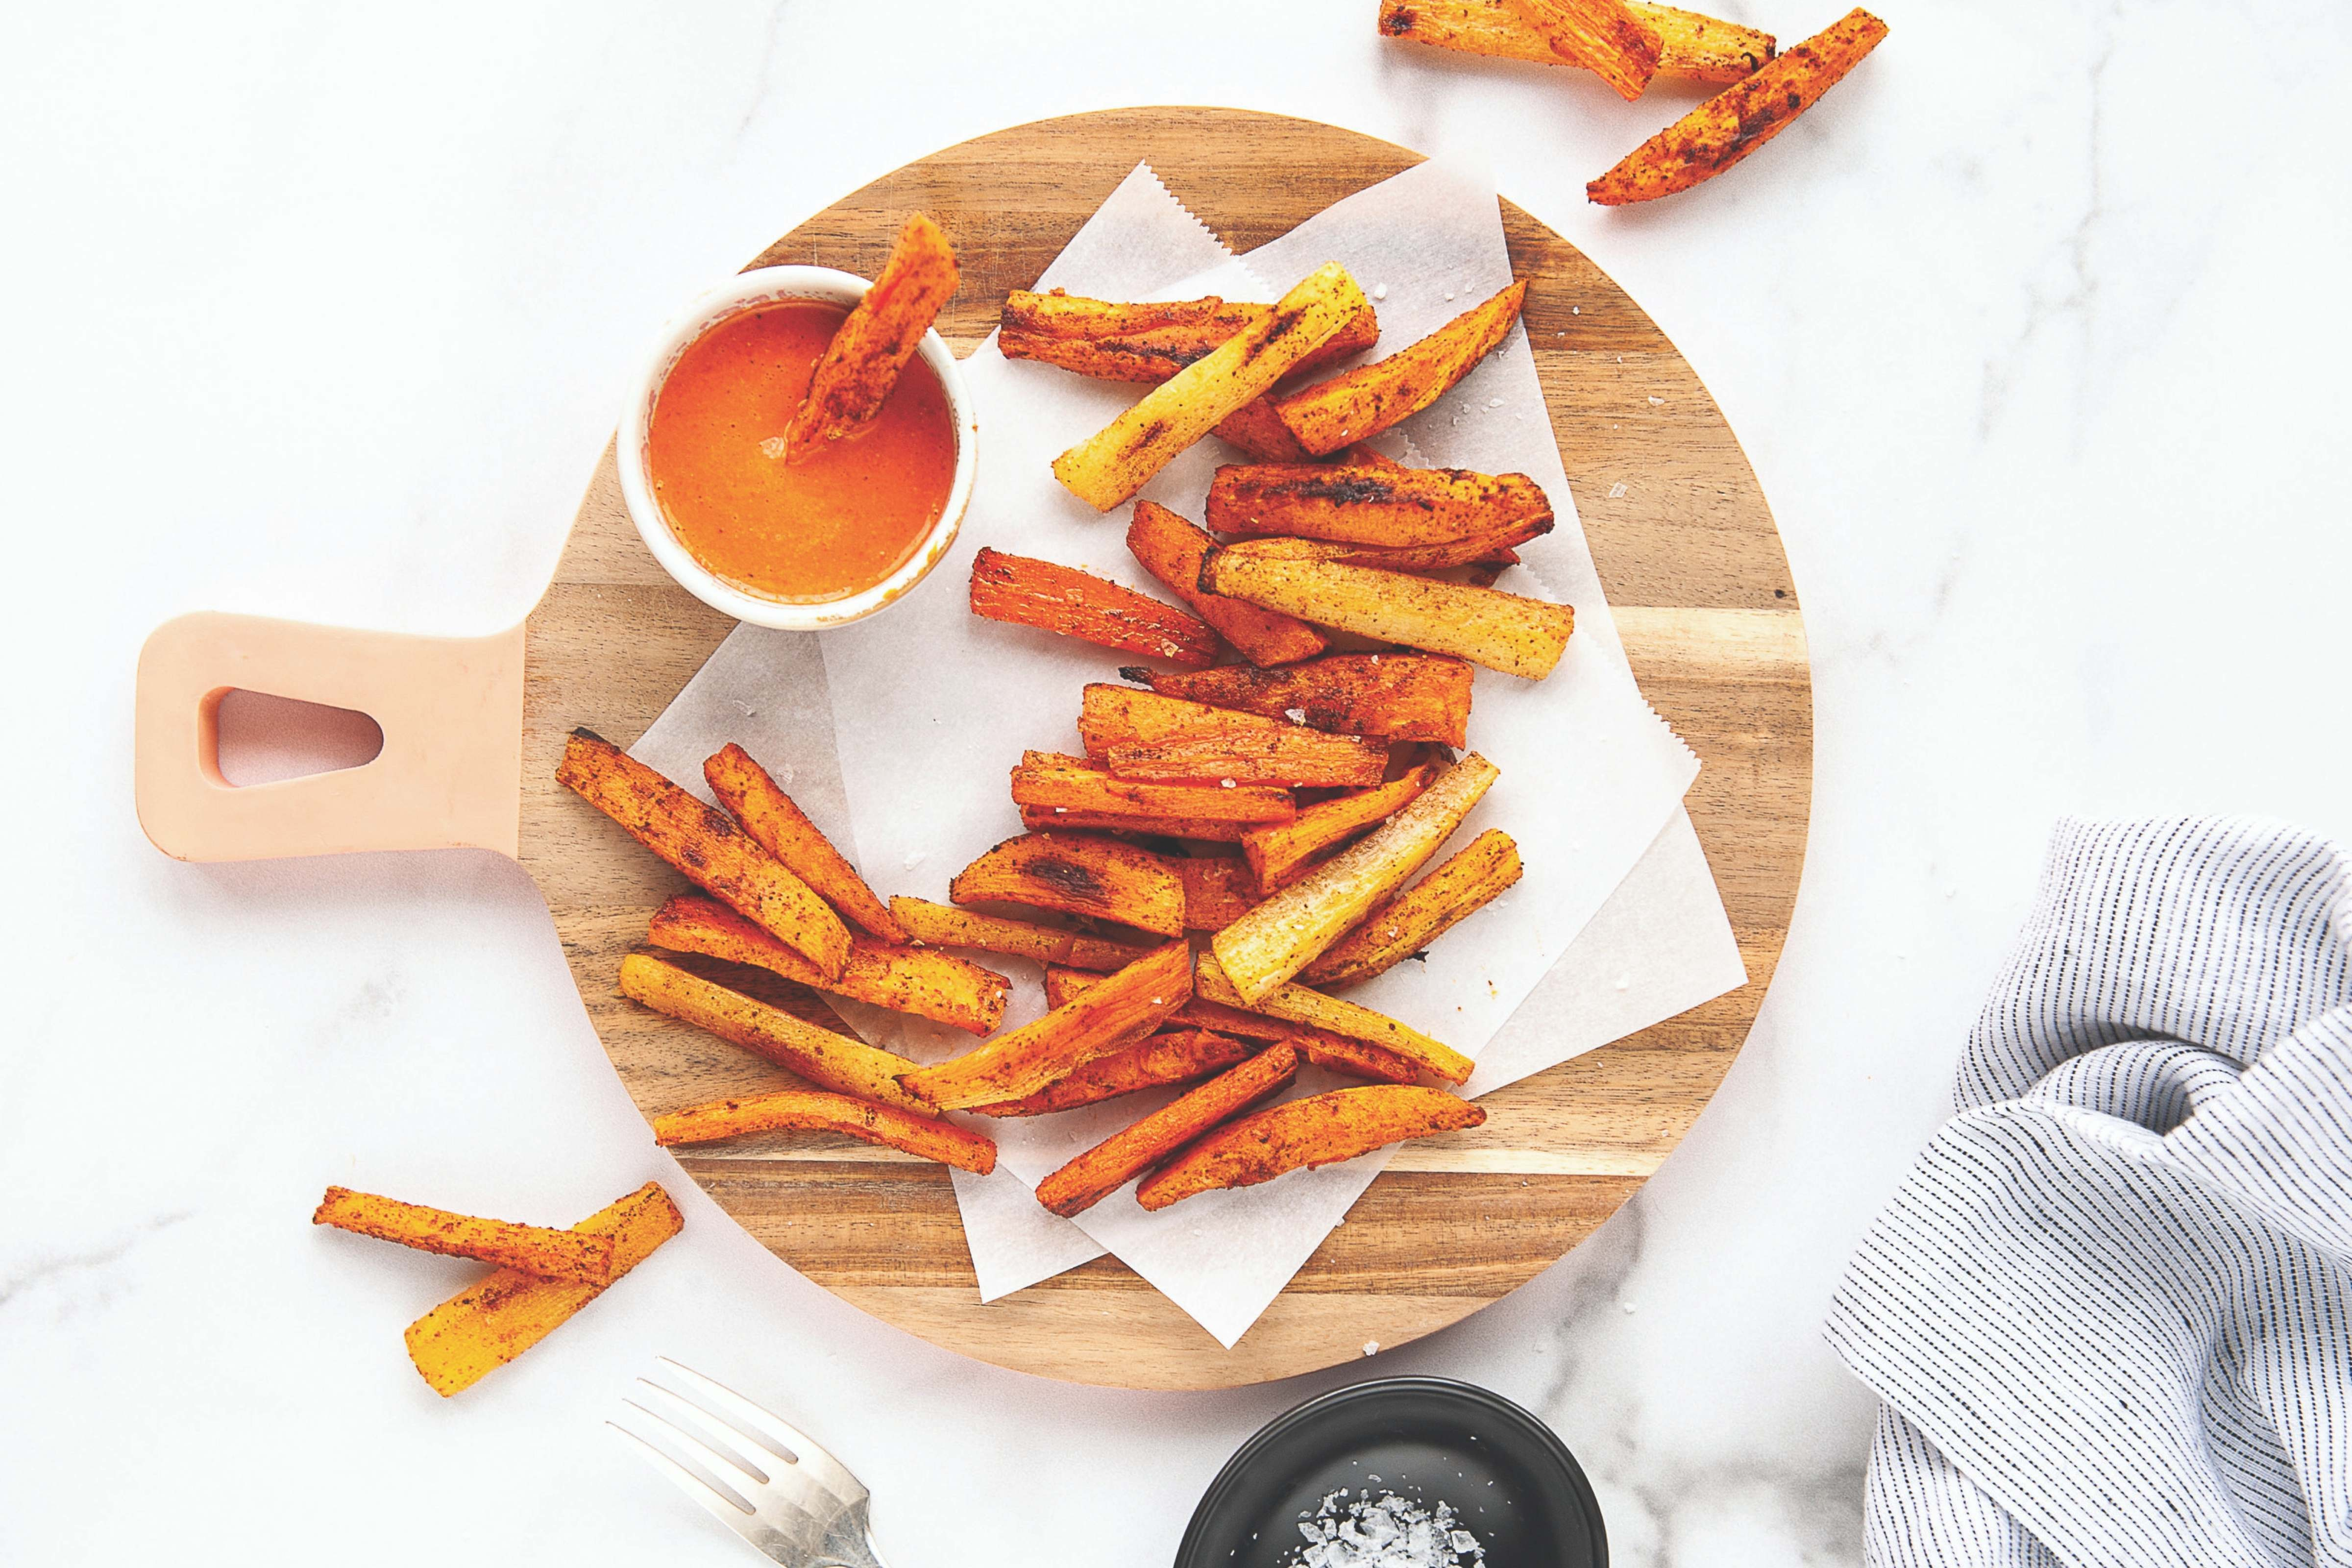 Smoky Sweet Potato And Carrot Fries With Roasted Red Pepper Dipping Sauce